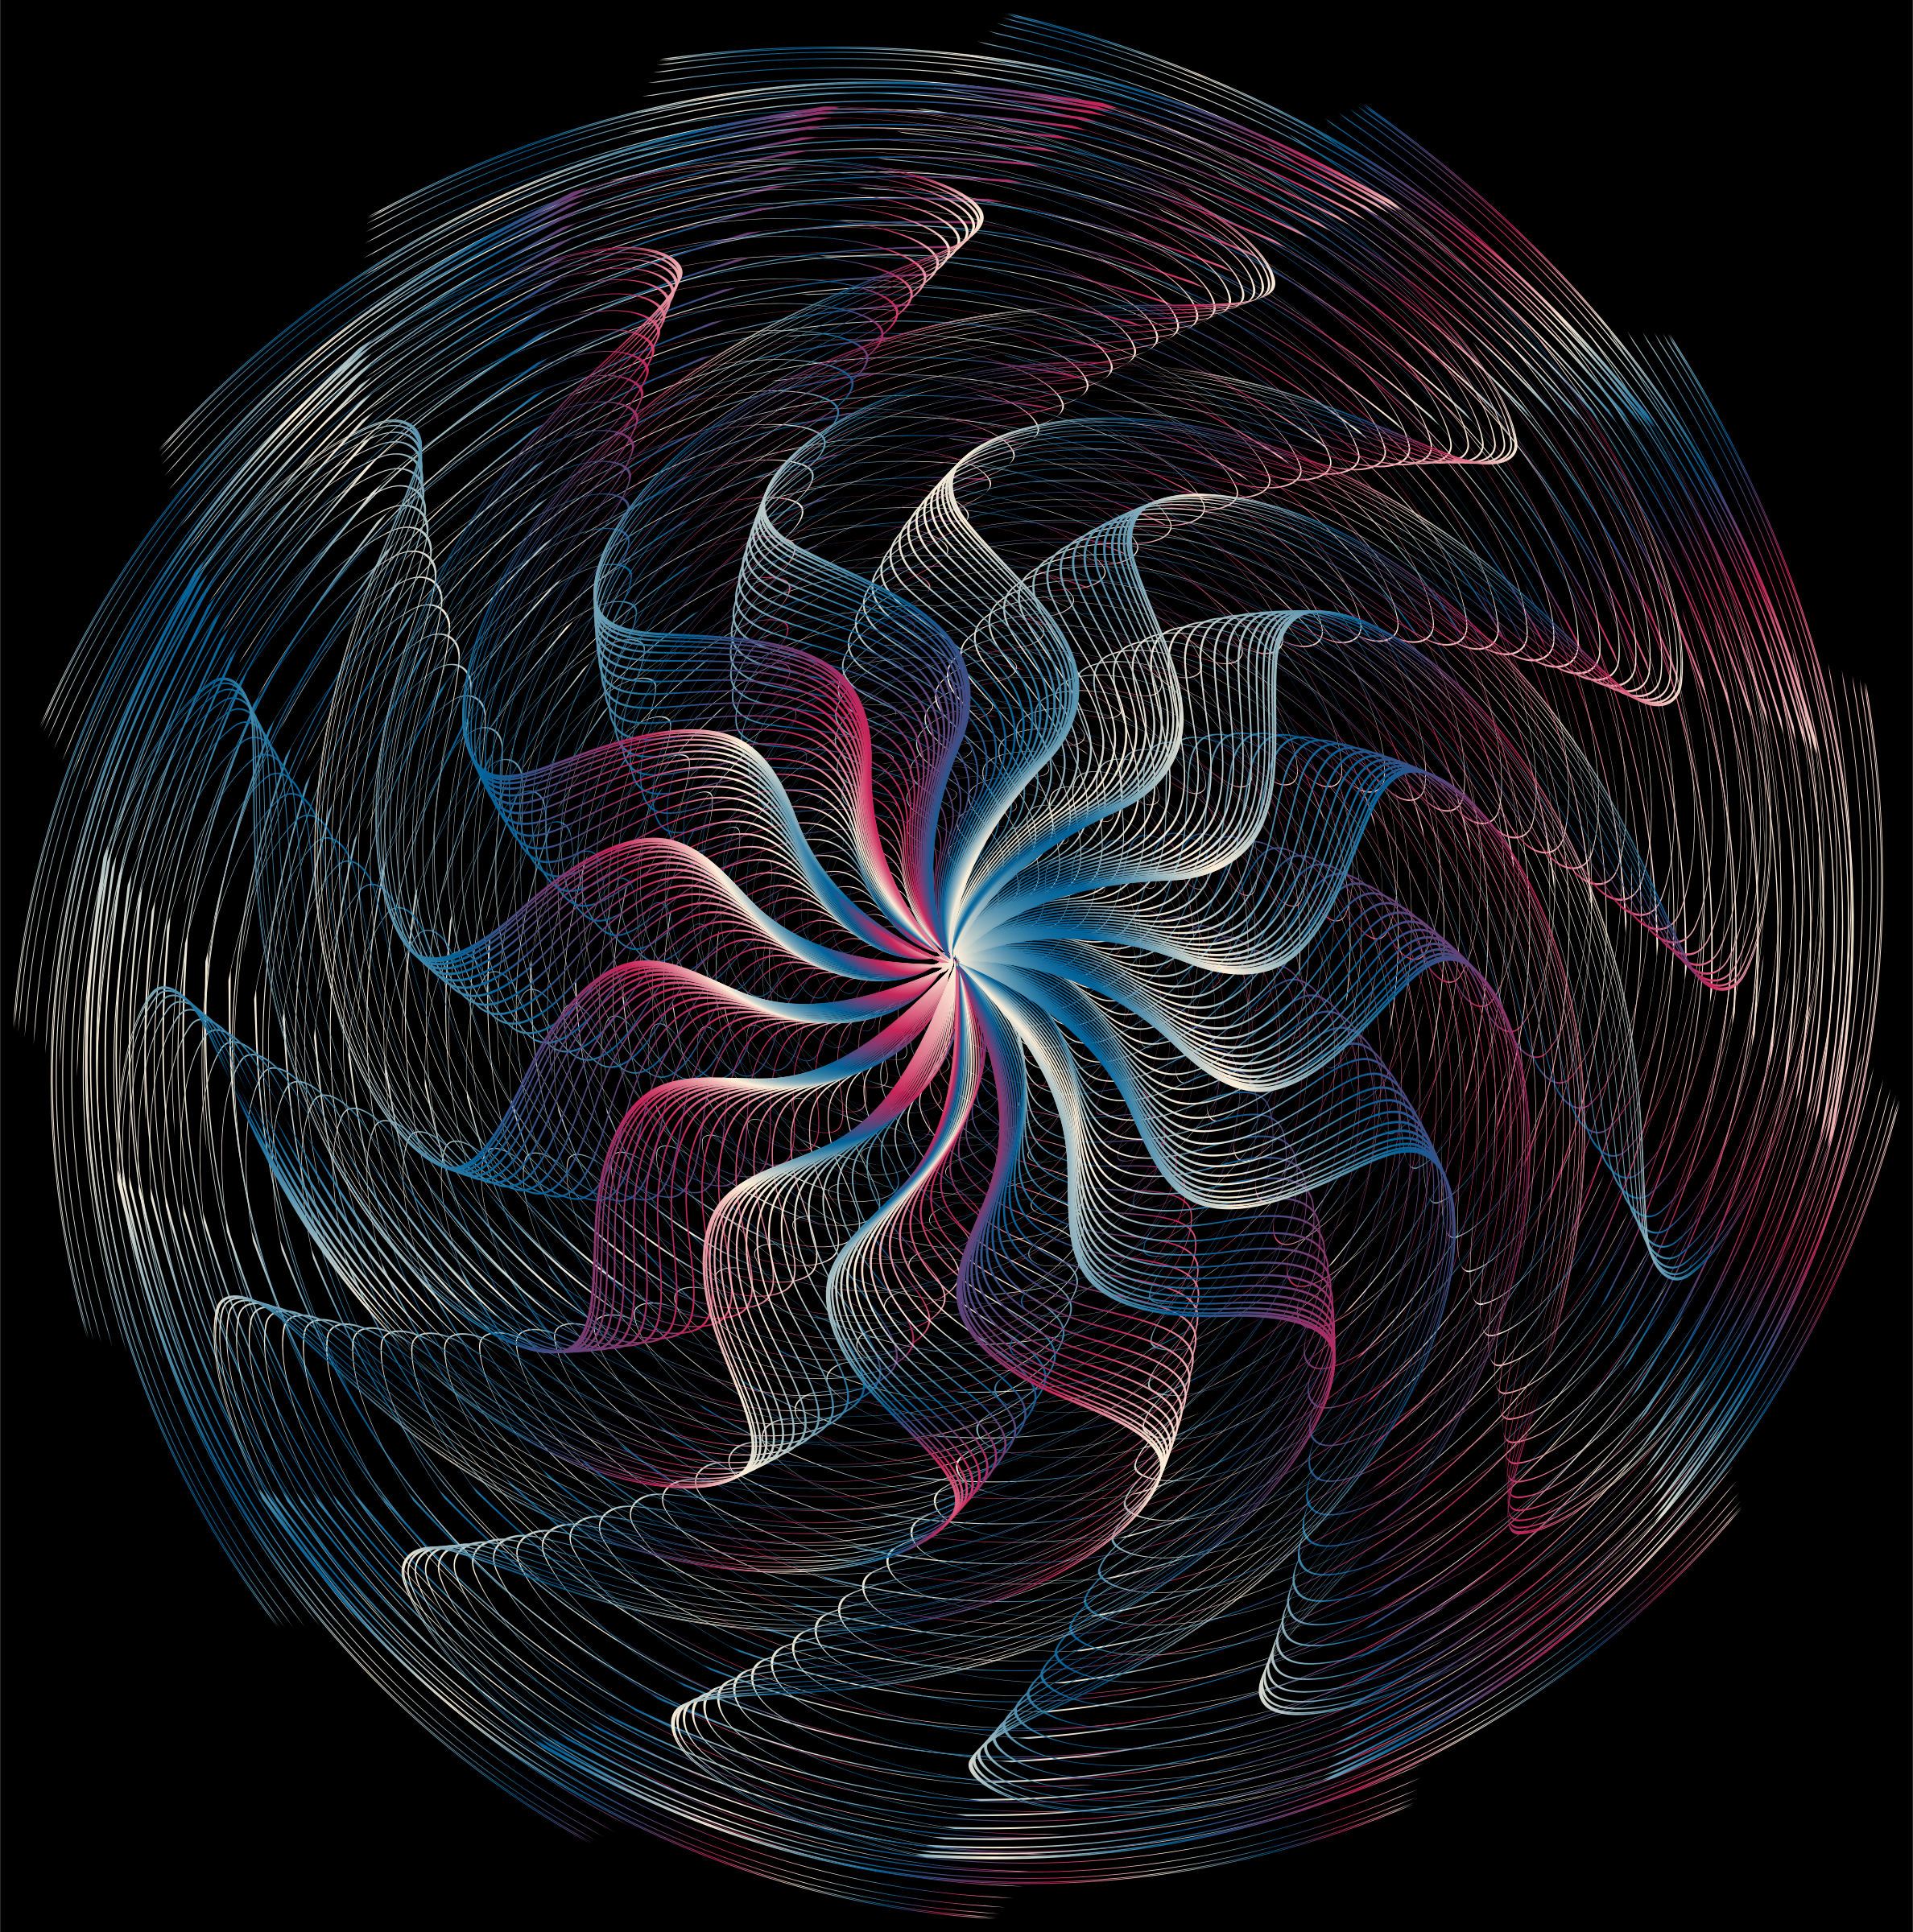 Colorful Wavy Vortex Line Art 5 by GDJ